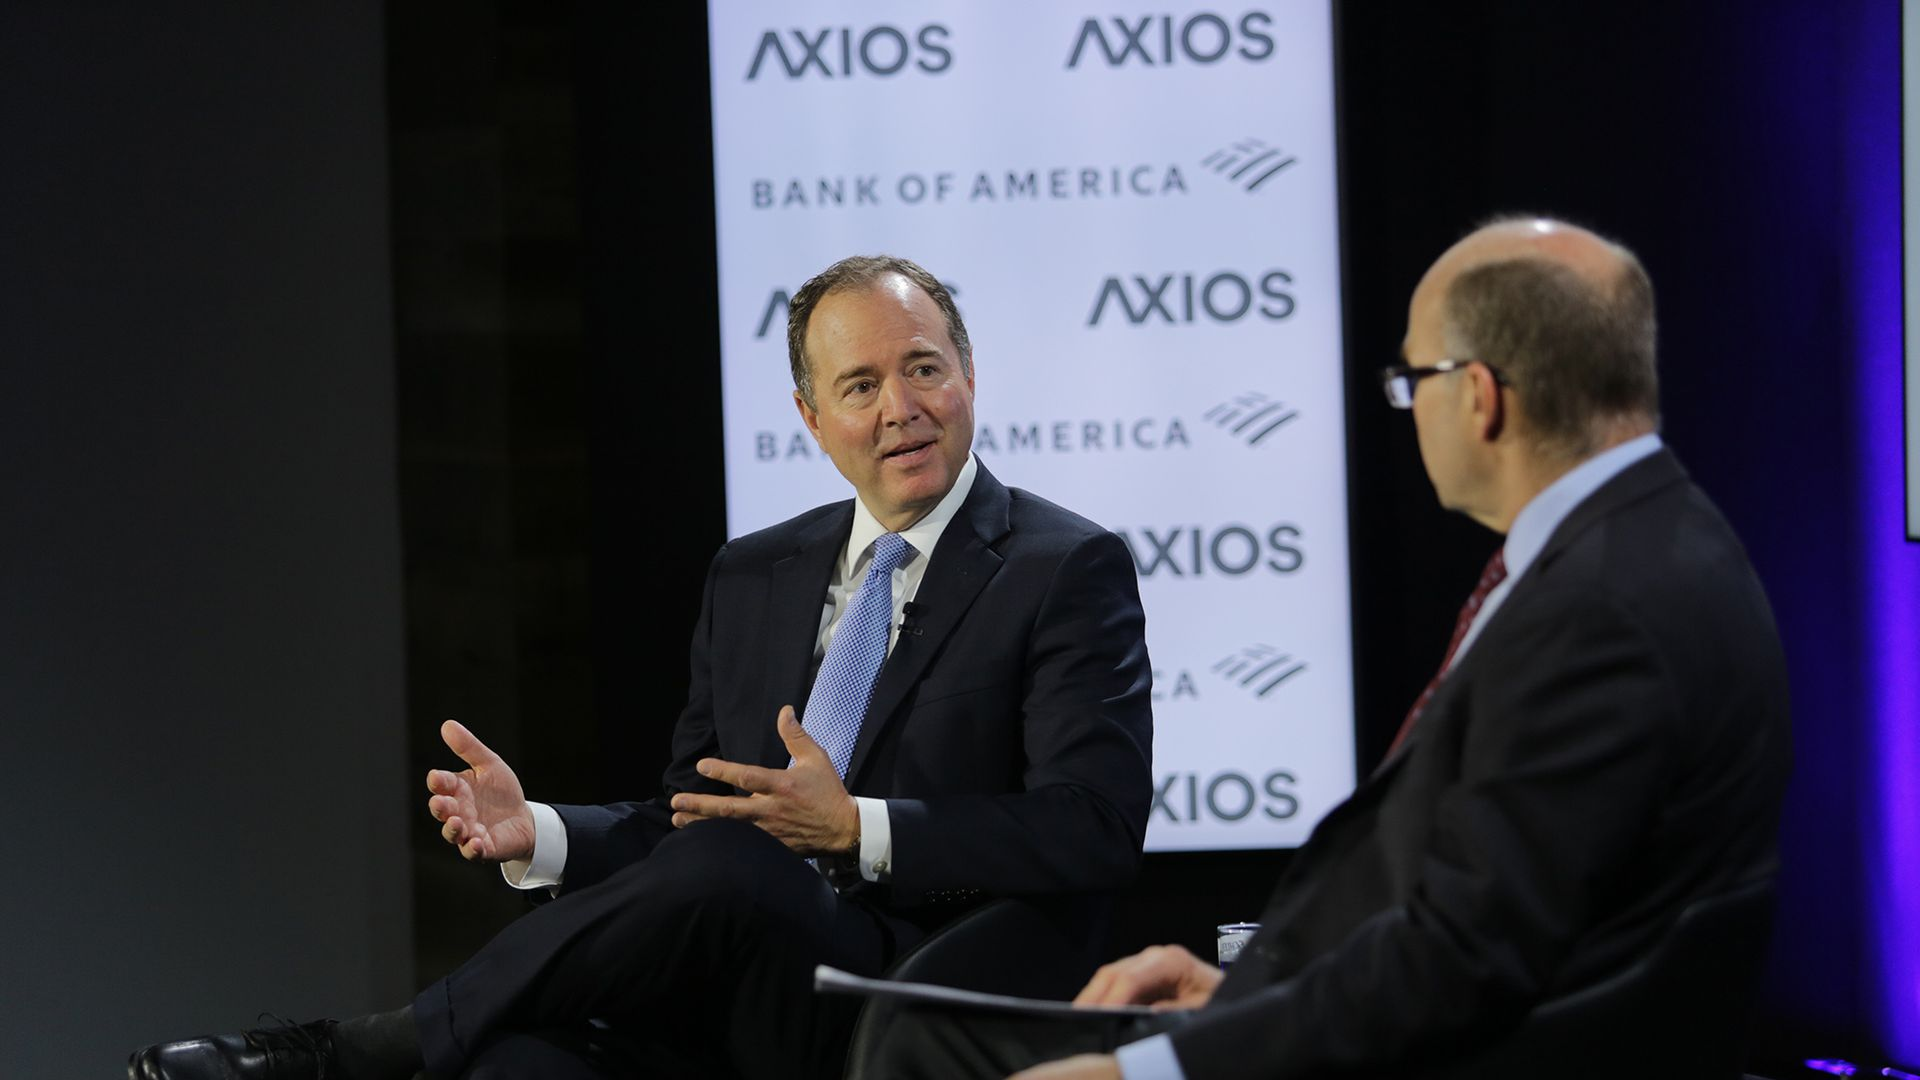 Rep. Adam Schiff sits with Axios' Mike Allen on the Axios stage.